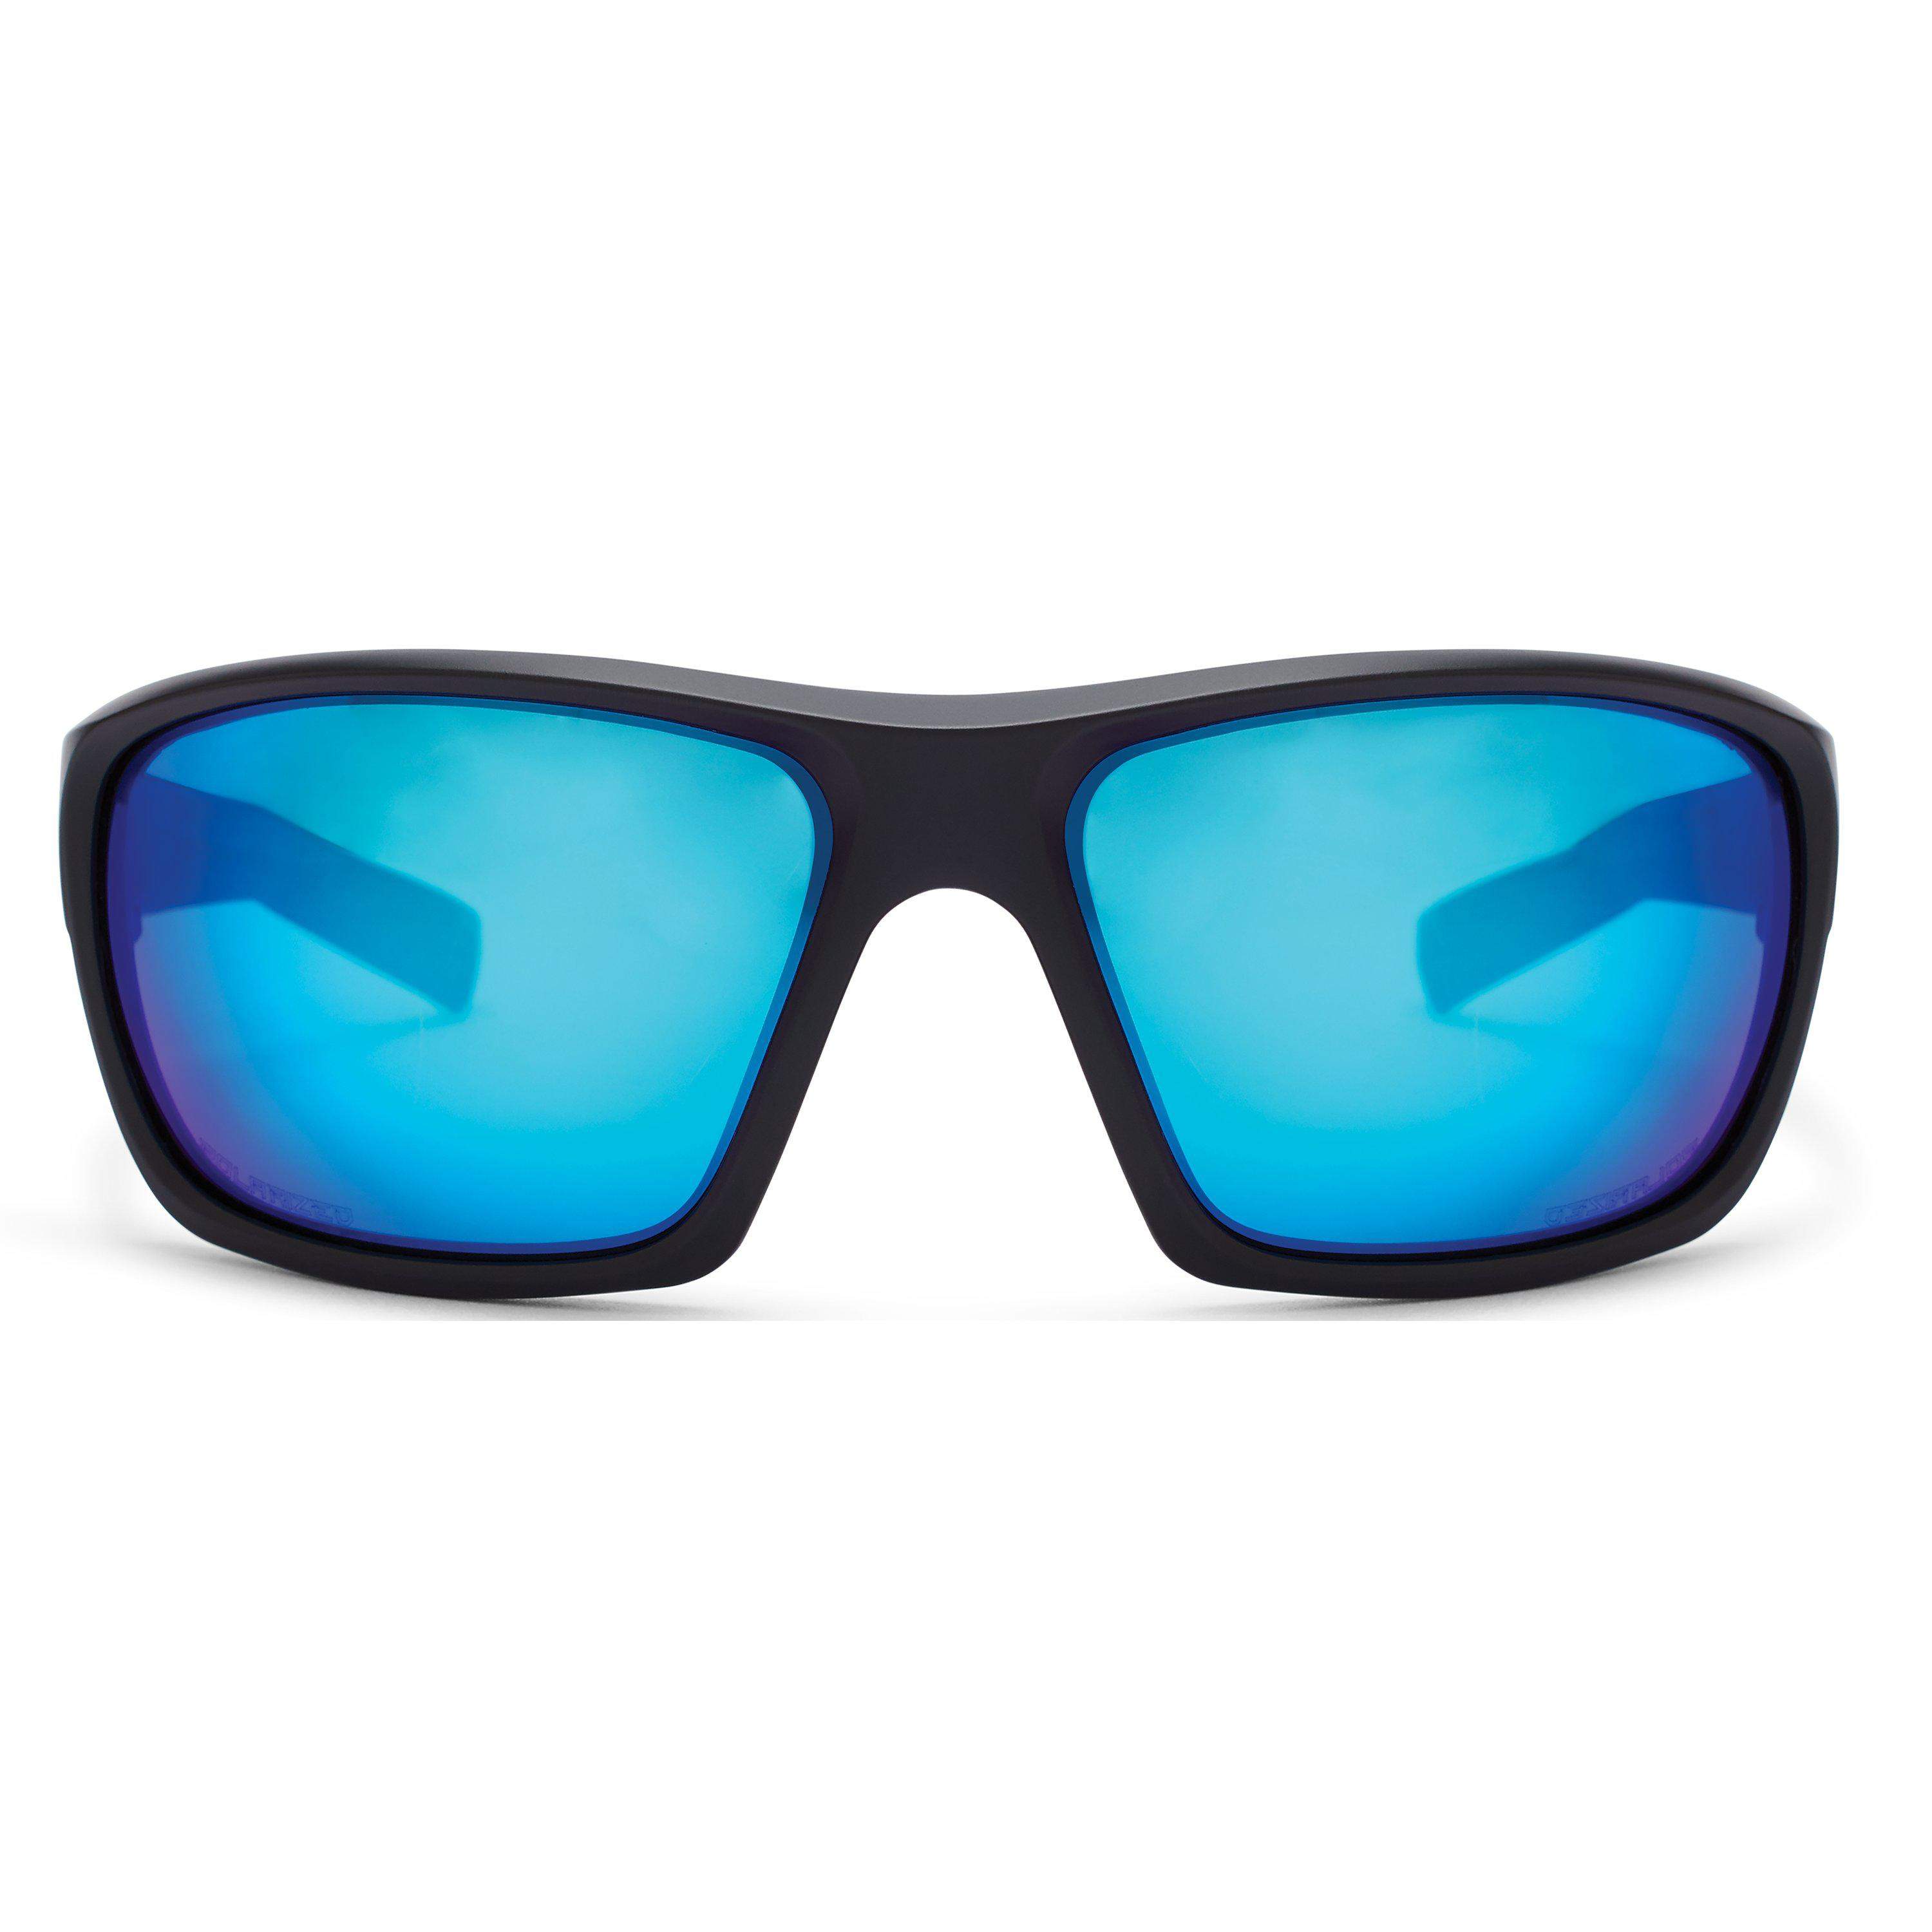 a58a016bf05 Under Armour - Blue Ua Launch Storm Polarized Sunglasses for Men - Lyst.  View fullscreen